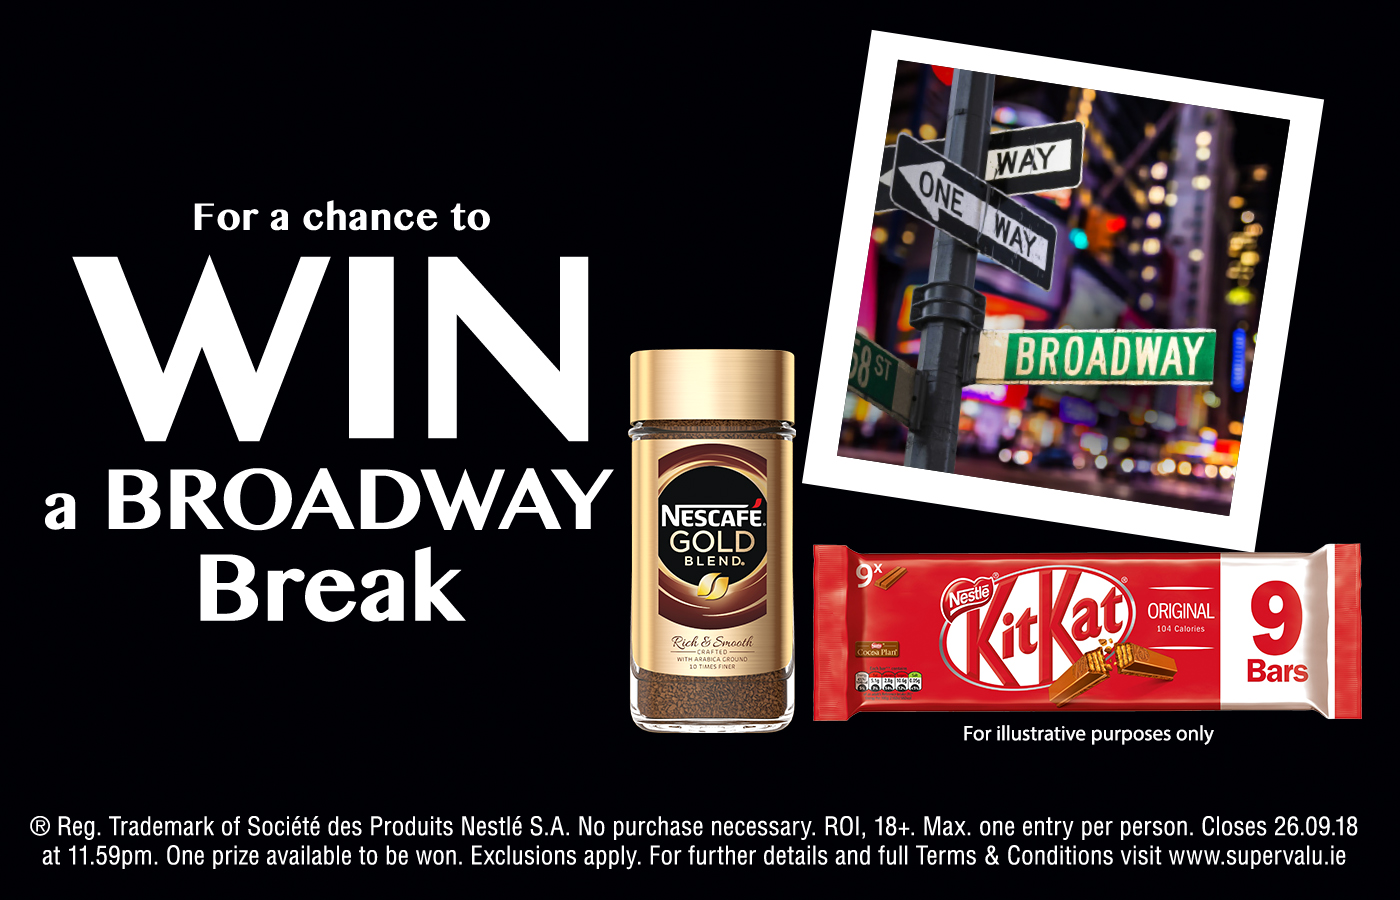 Win with KitKat